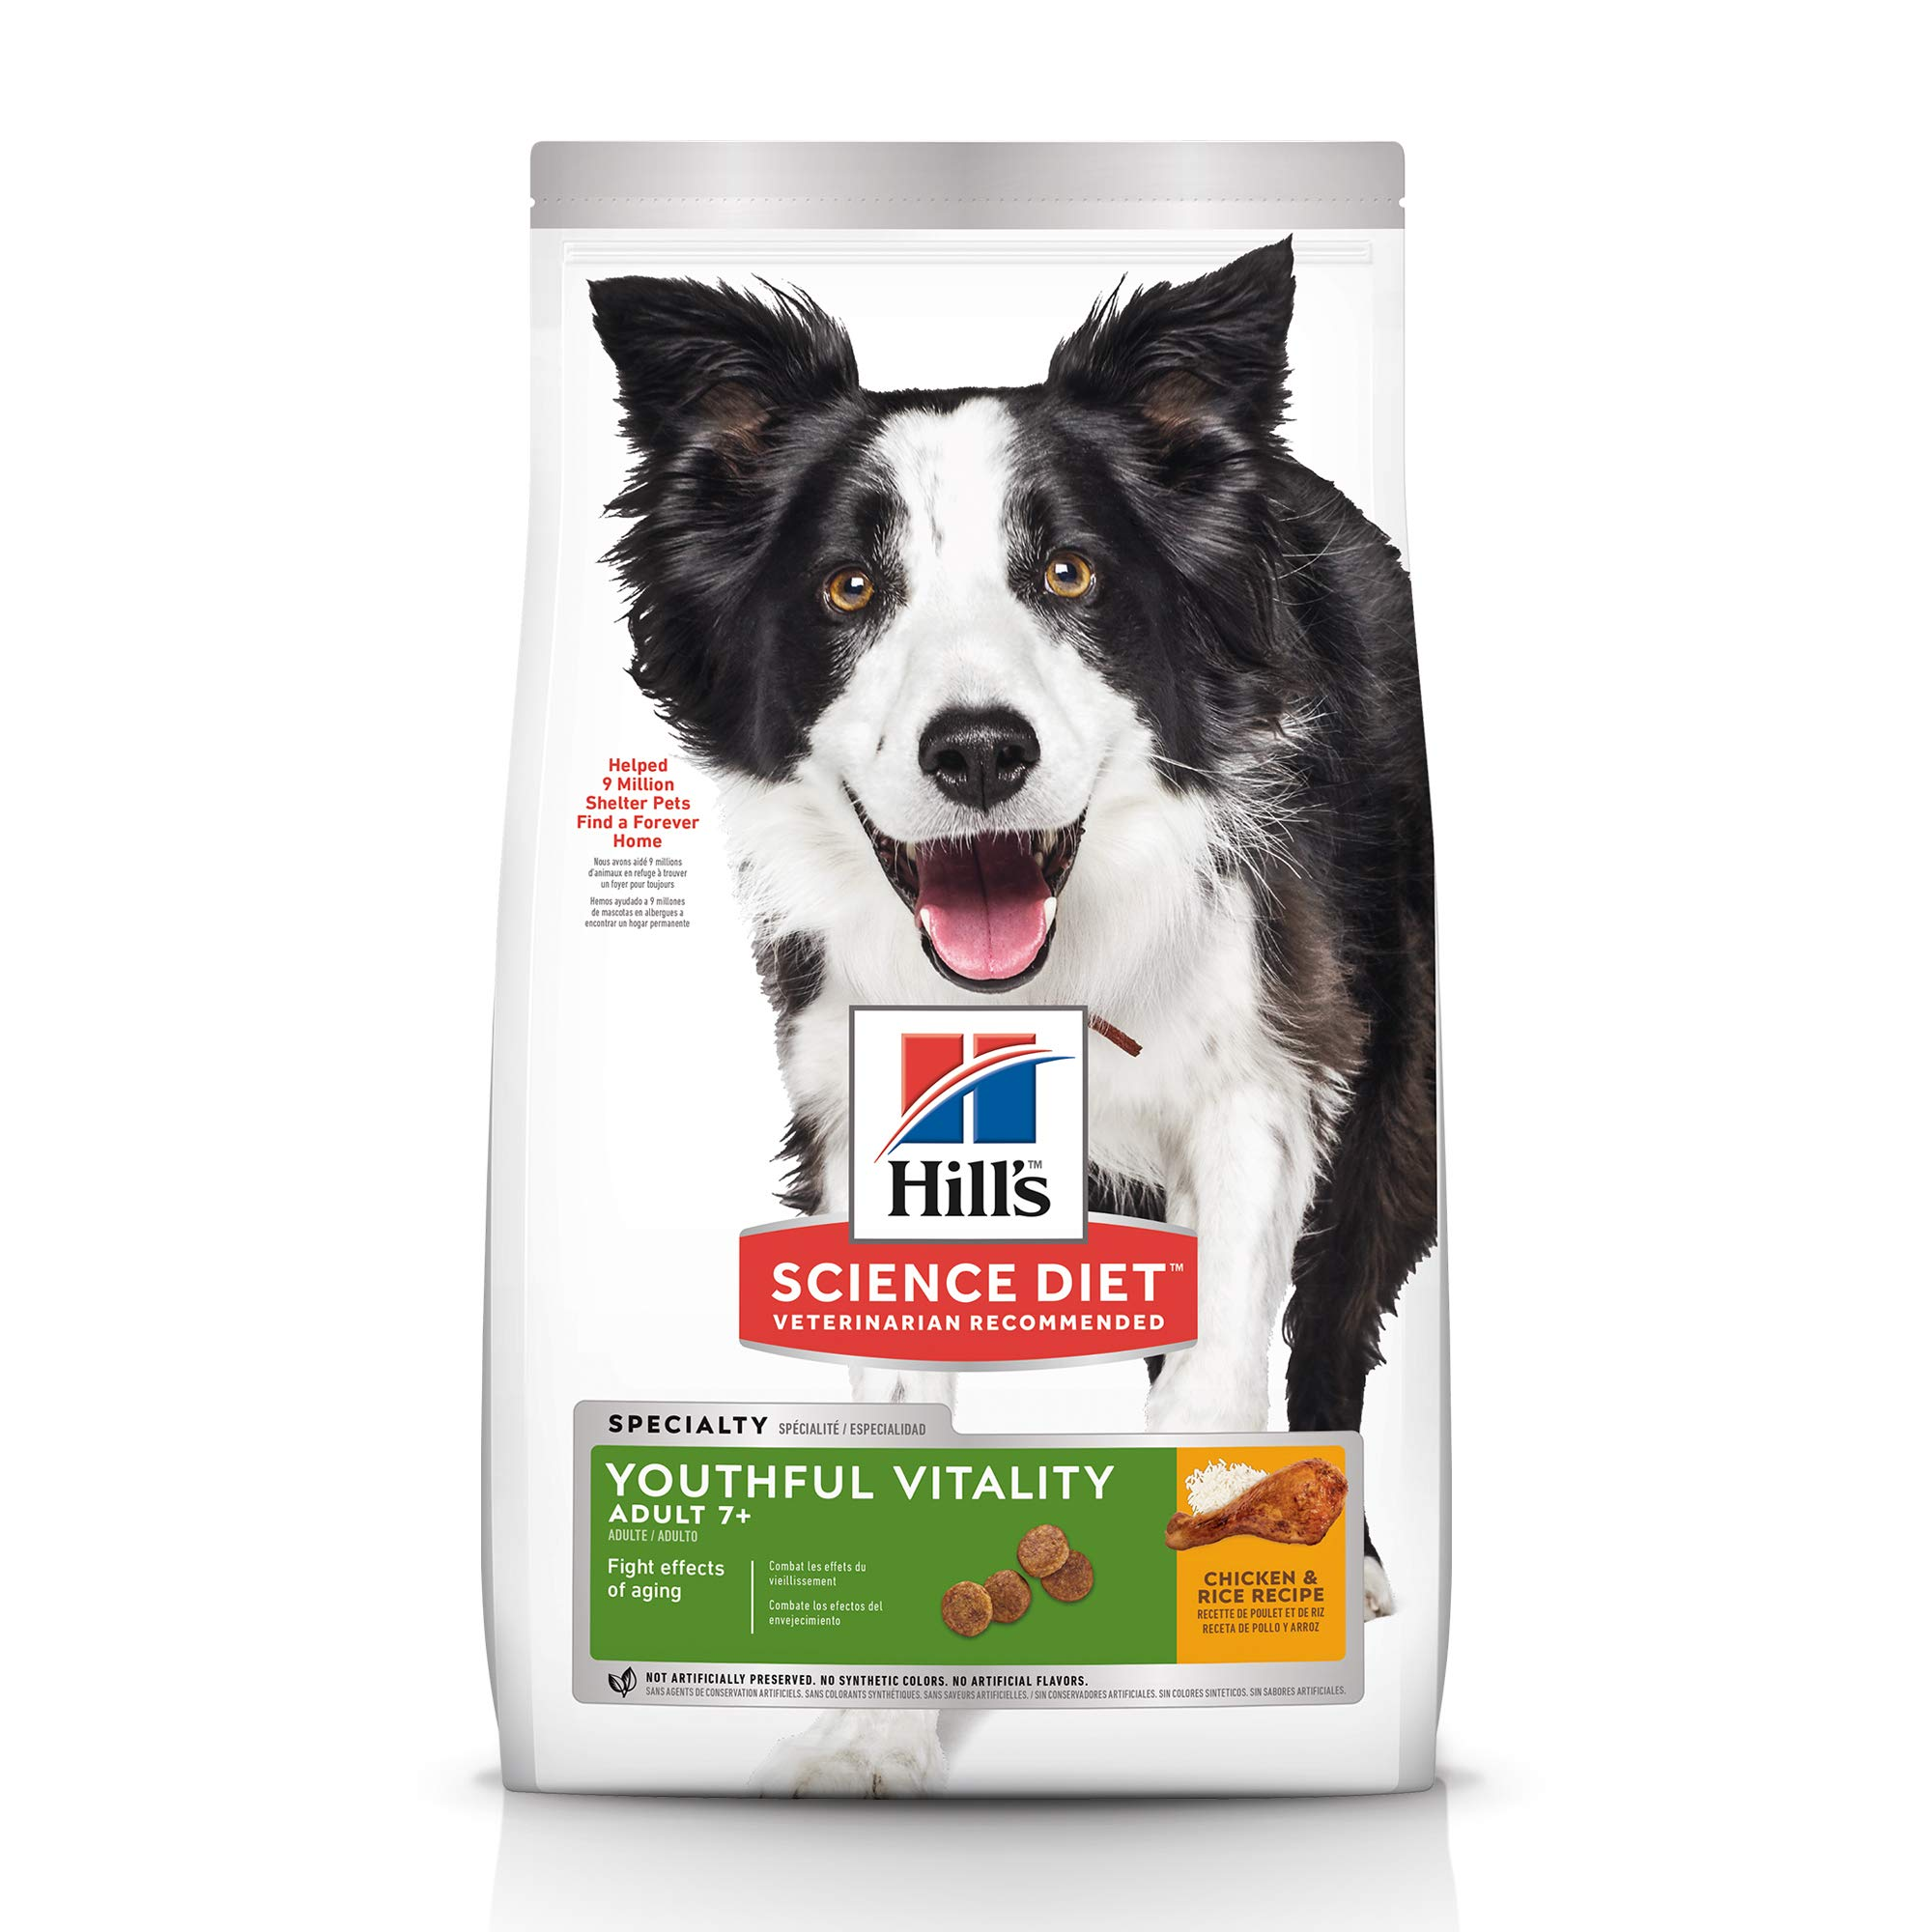 Hill's Science Diet Dry Dog Food, Adult 7+ for Senior Dogs, Youthful Vitality, Chicken & Rice Recipe, 21.5 lb Bag